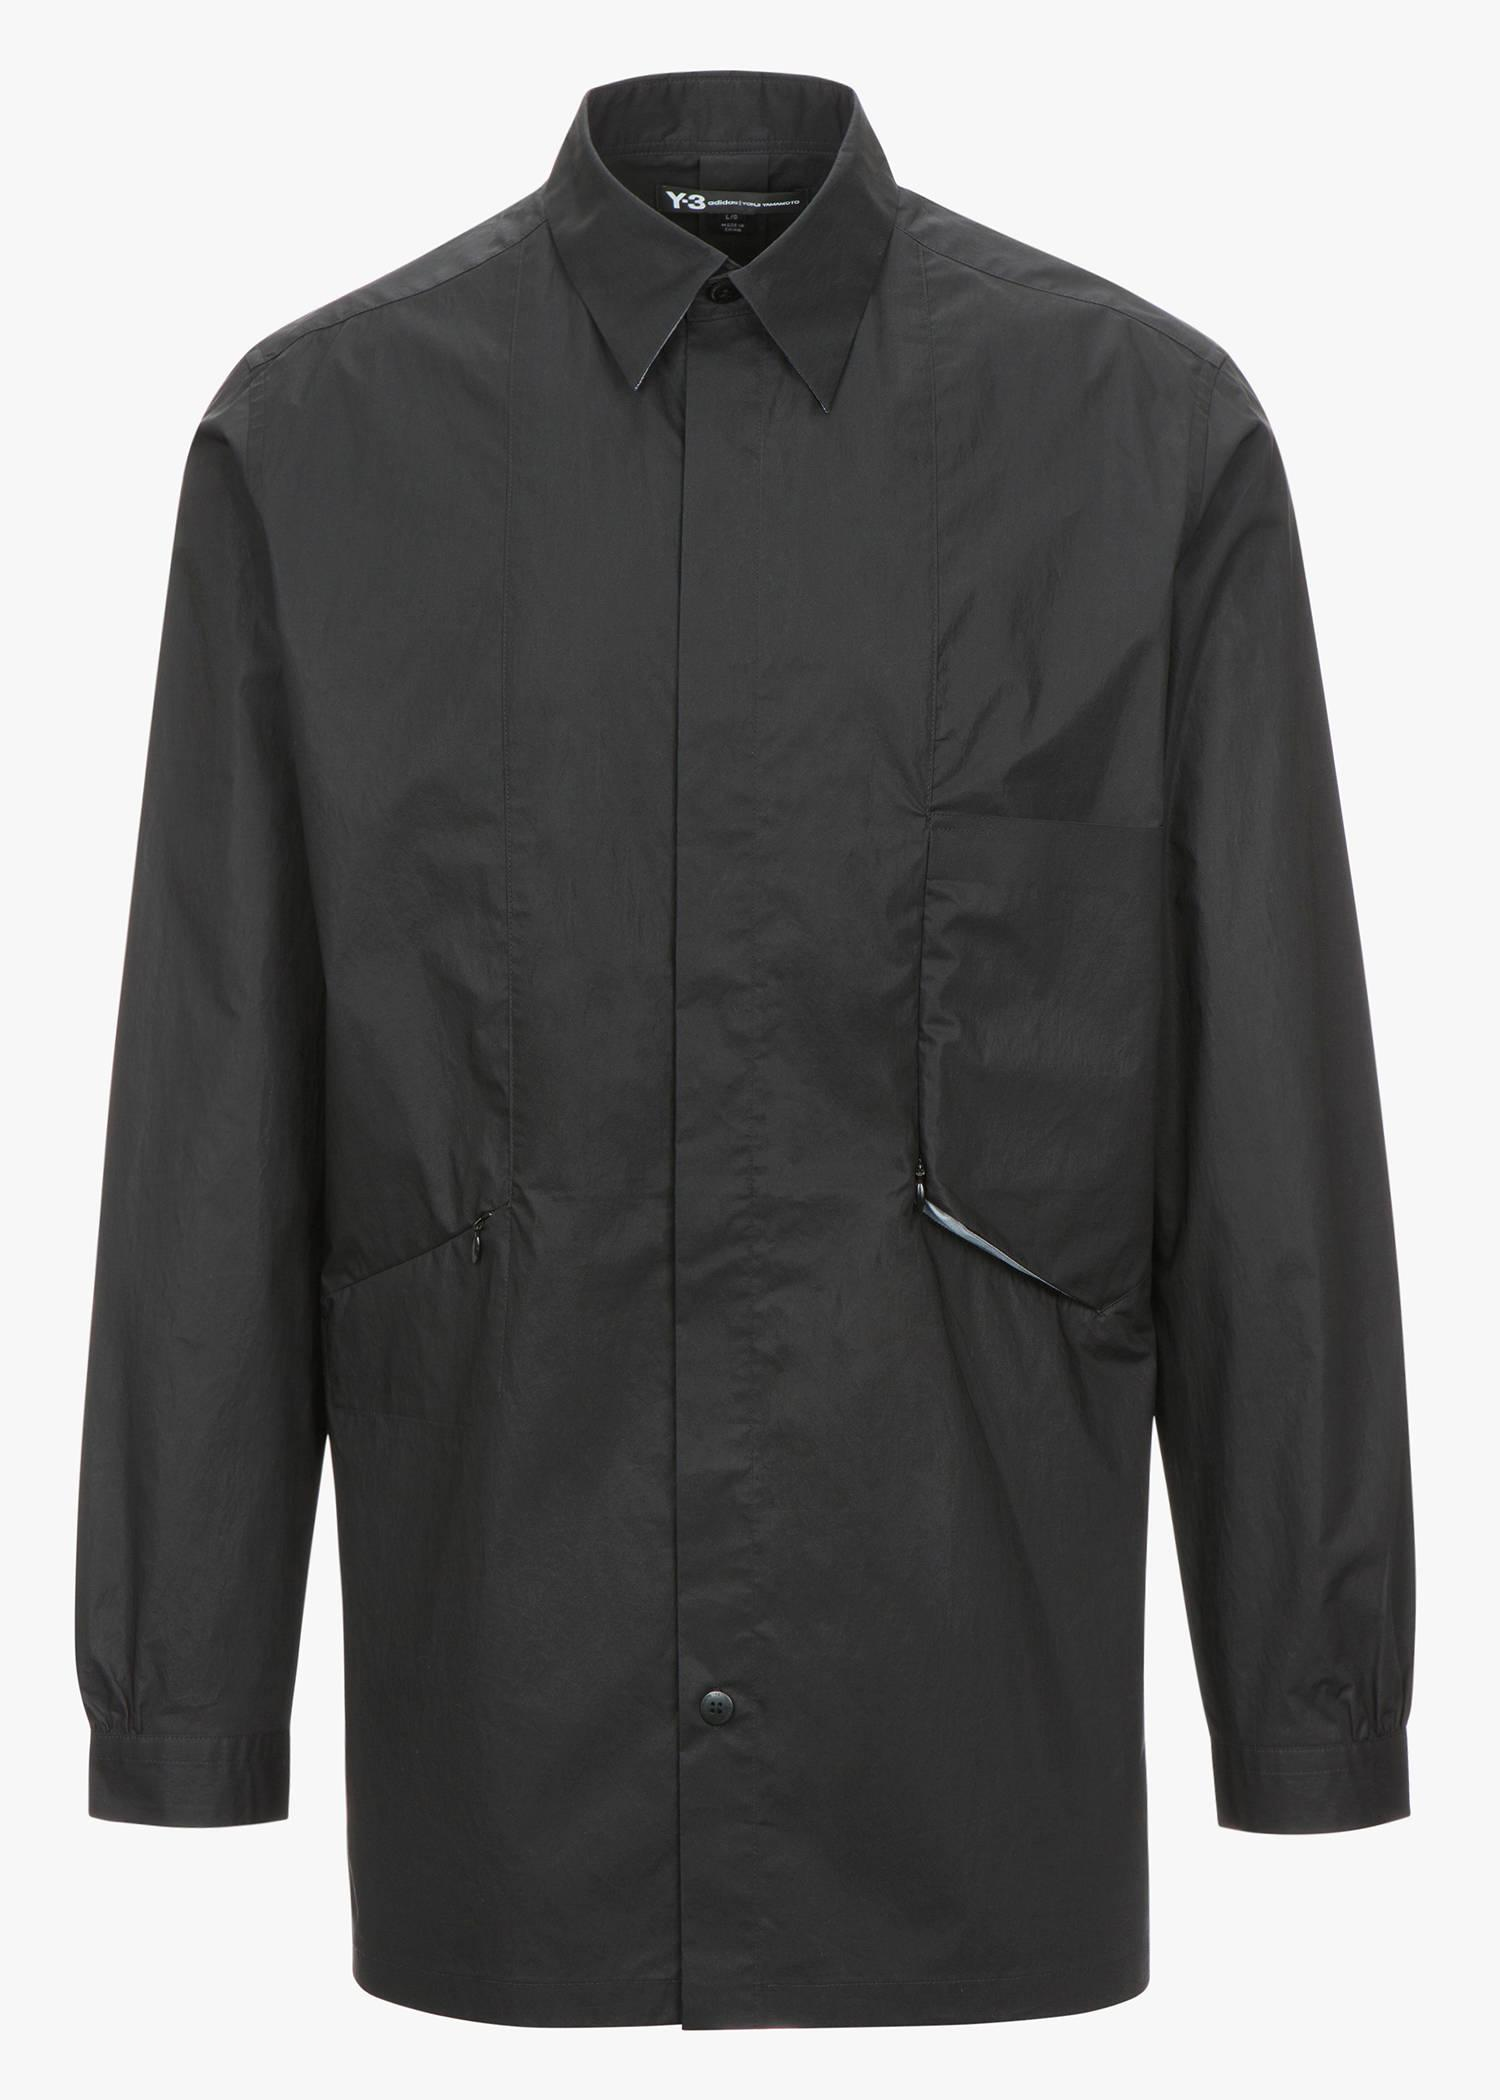 Y-3 Military Space Shirt In Black